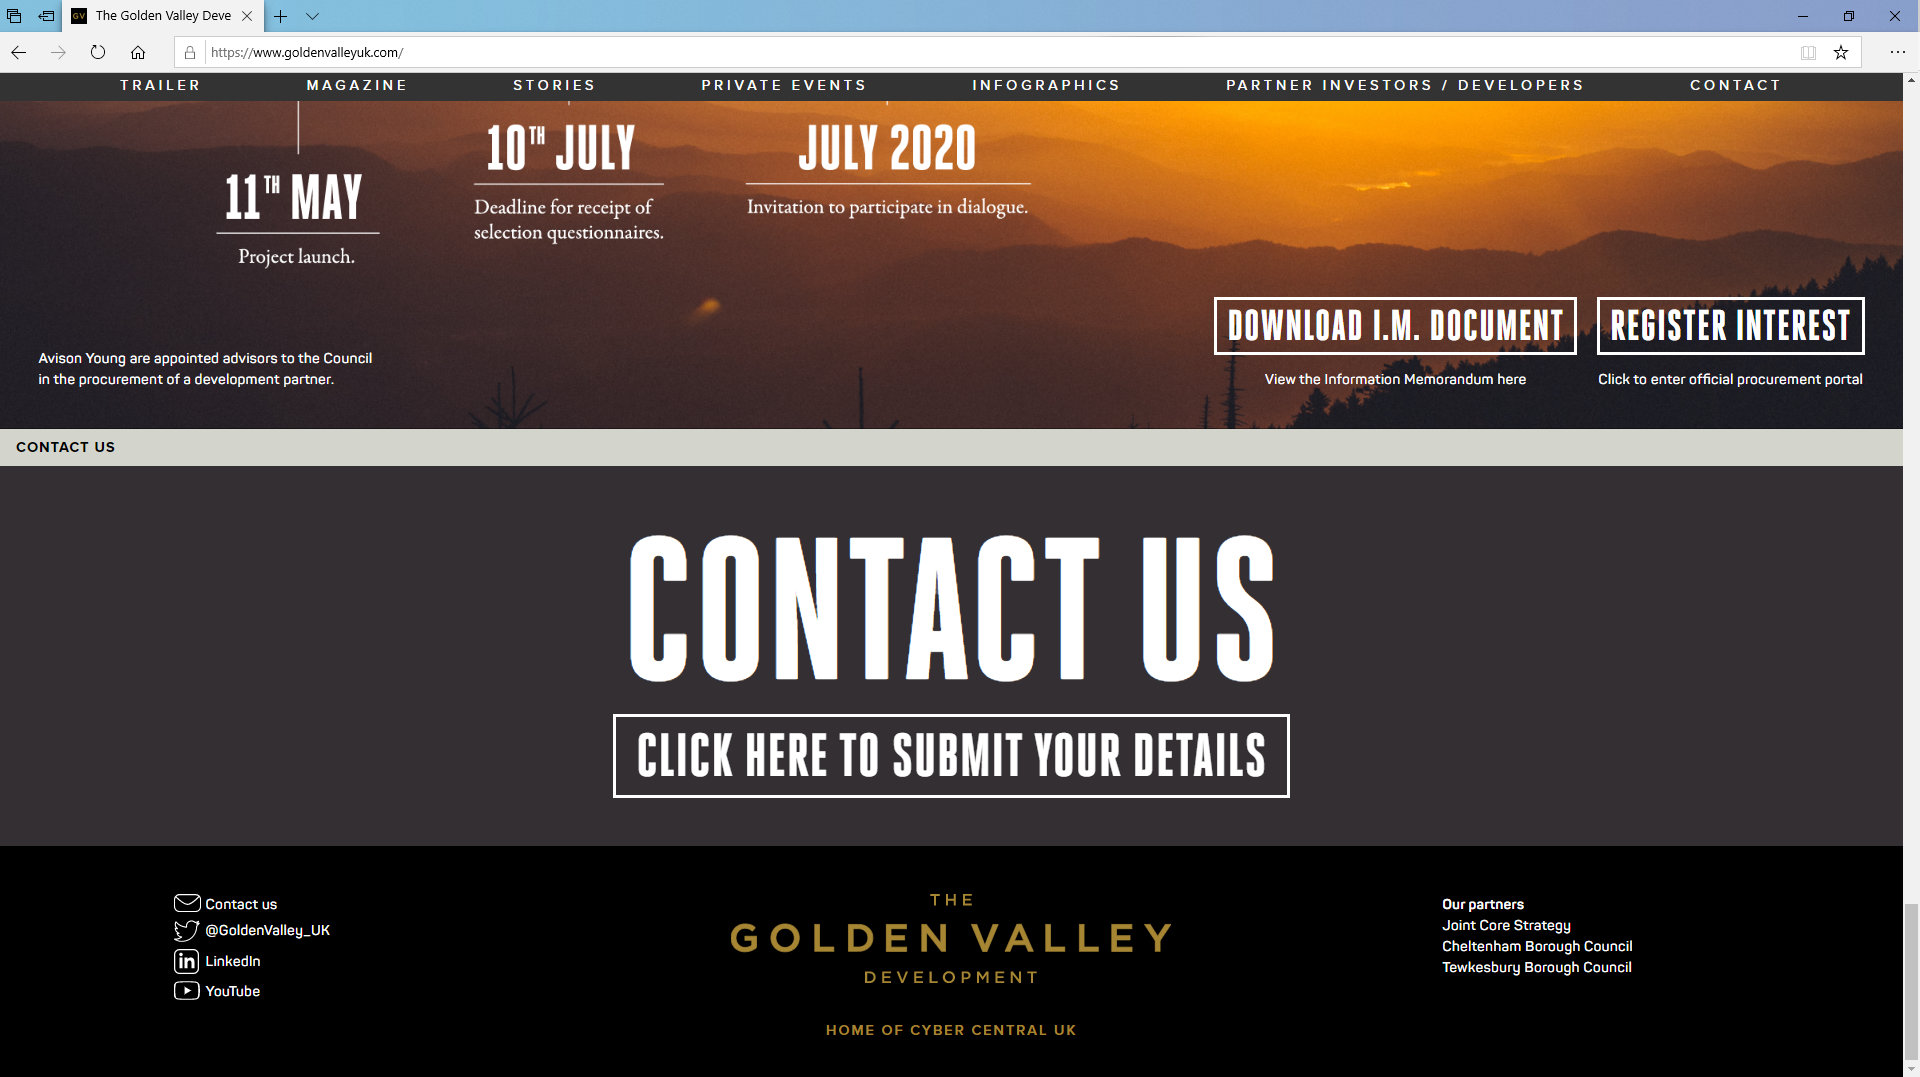 Golden Valley Development Website/Contact by Tang Marketing